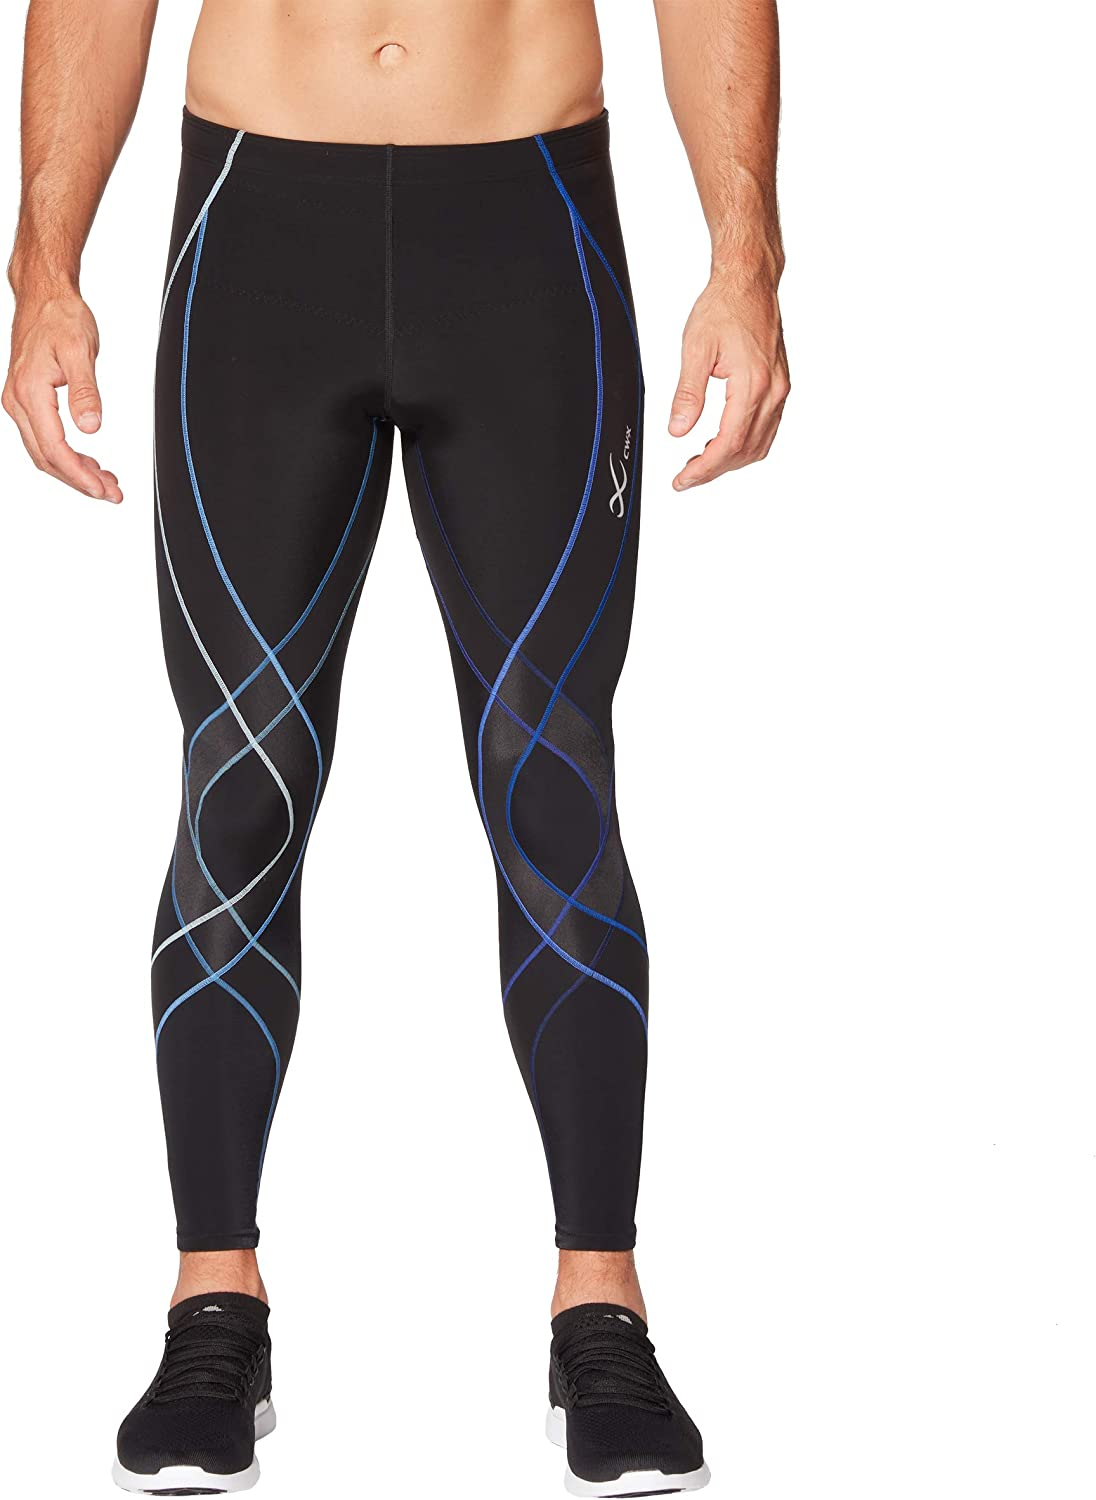 CW-X Mens Endurance Generator High Performance Compression Tights